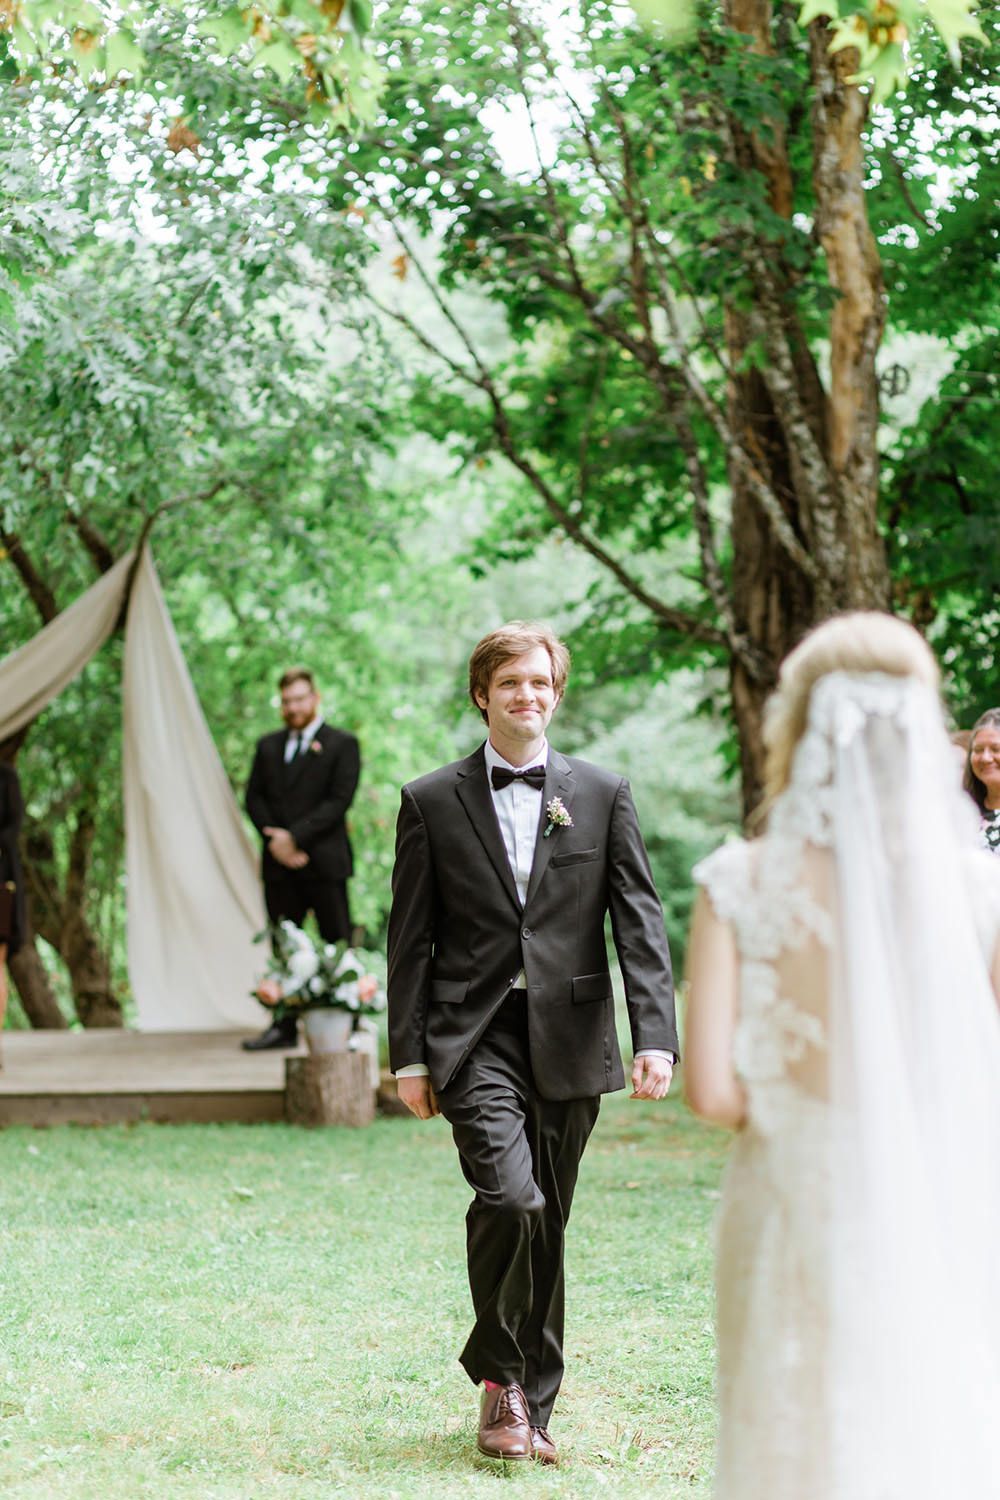 81 Memorable And Precious Moments At Weddings